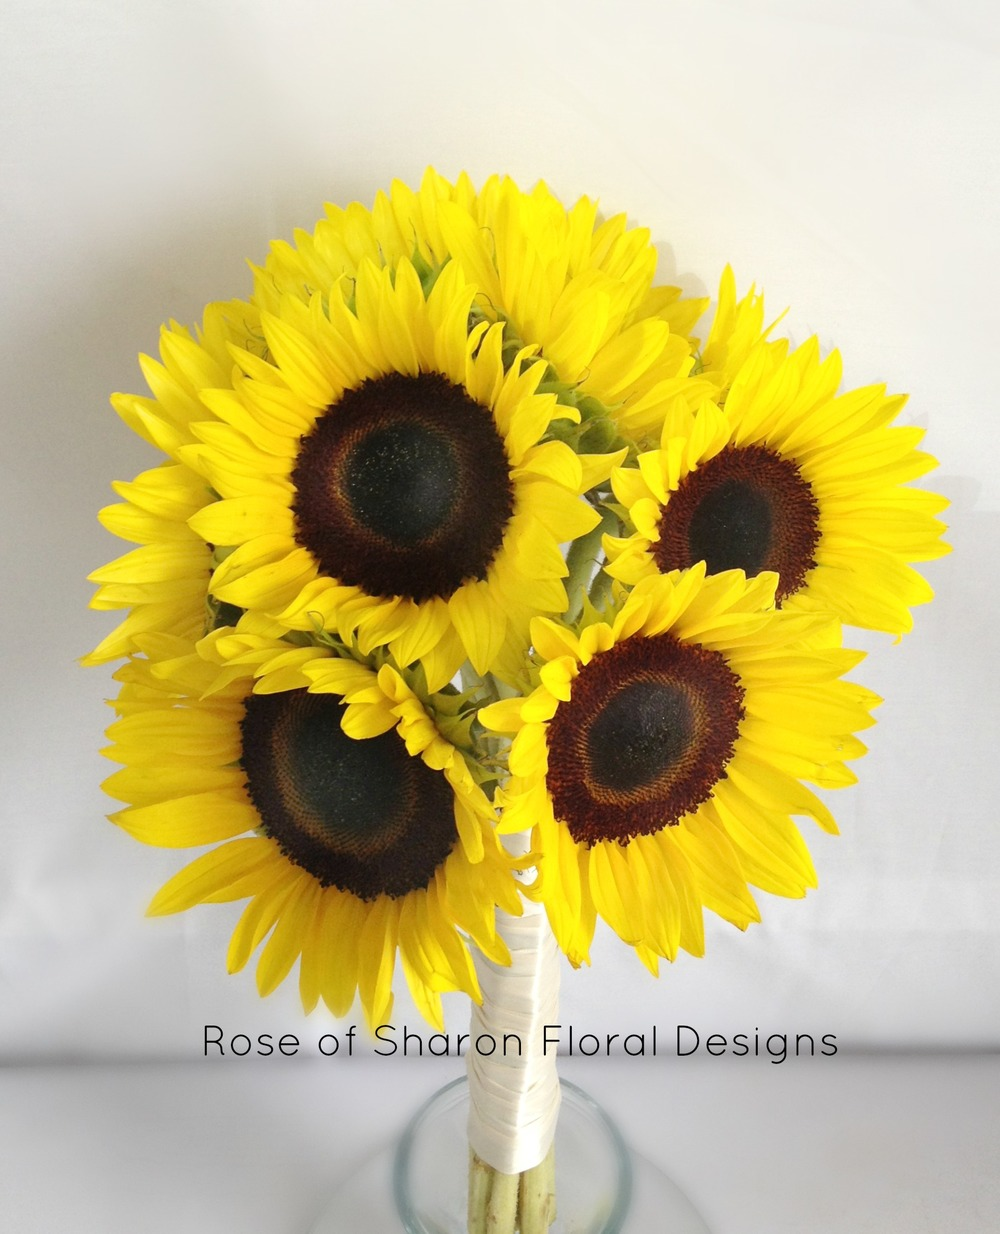 Sunflower bouquet. Rose of Sharon Floral Designs